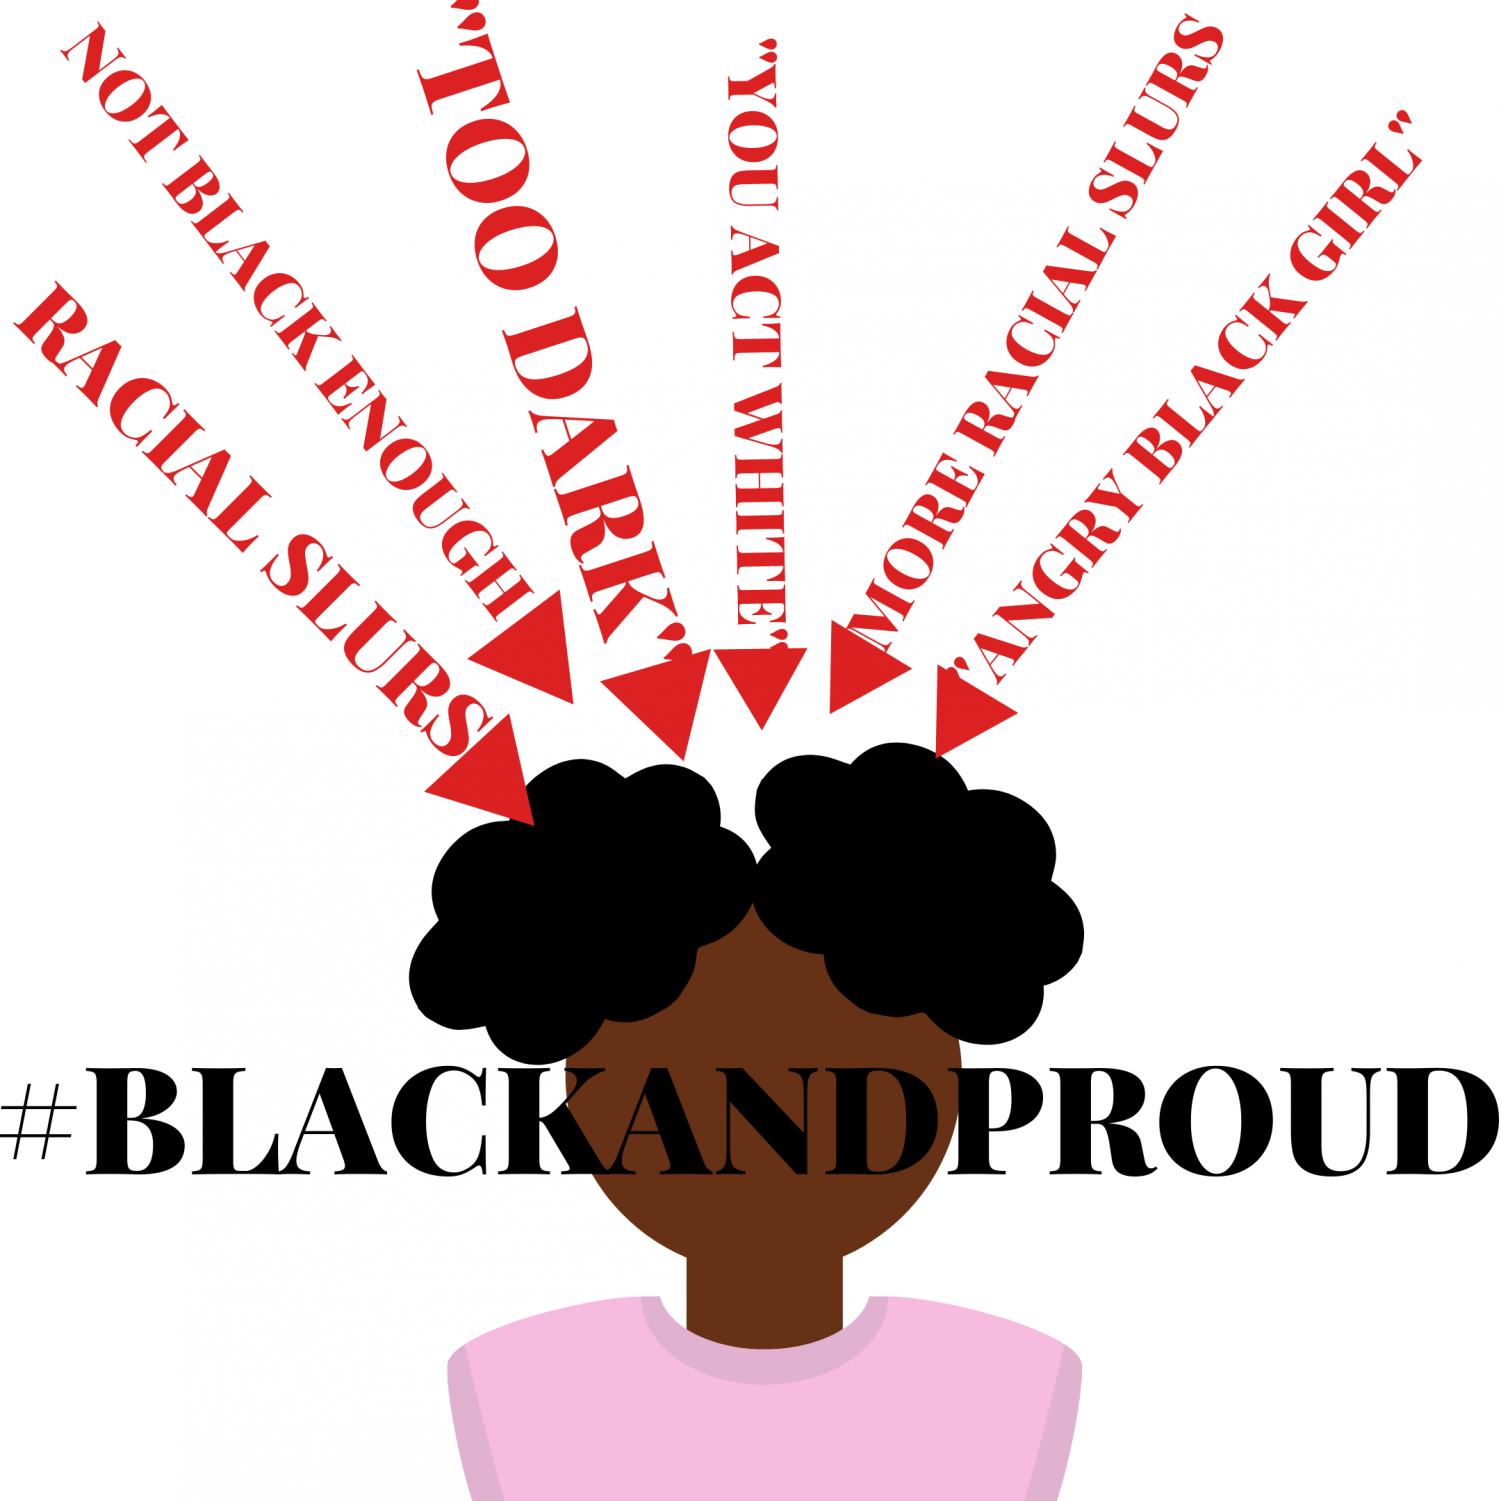 Throughout my 12 years of school, my blackness was the butt of many jokes. Now, I am proud of who I am on the inside and the outside.